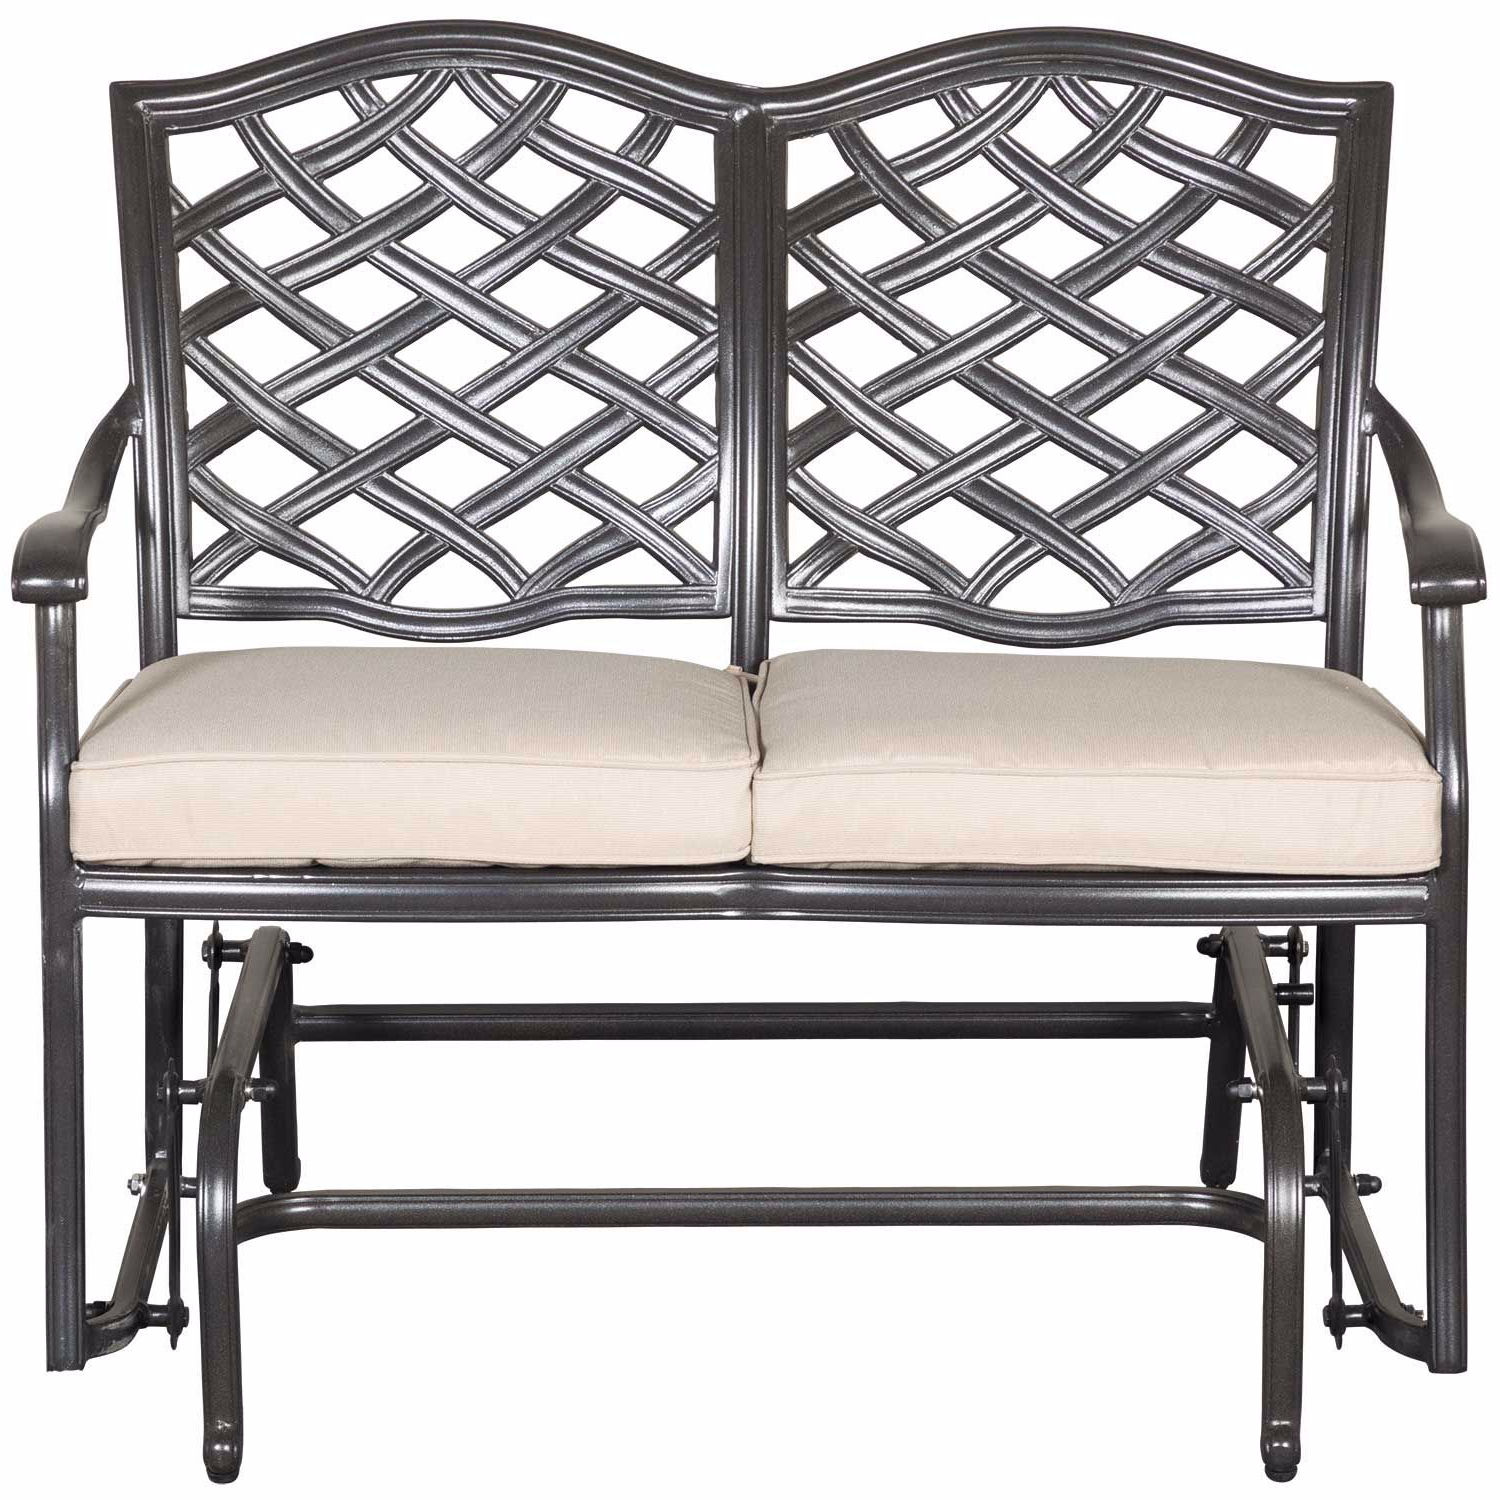 Outdoor Loveseat Gliders With Cushion In Fashionable Halston Patio Glider Loveseat With Cushions (View 15 of 25)